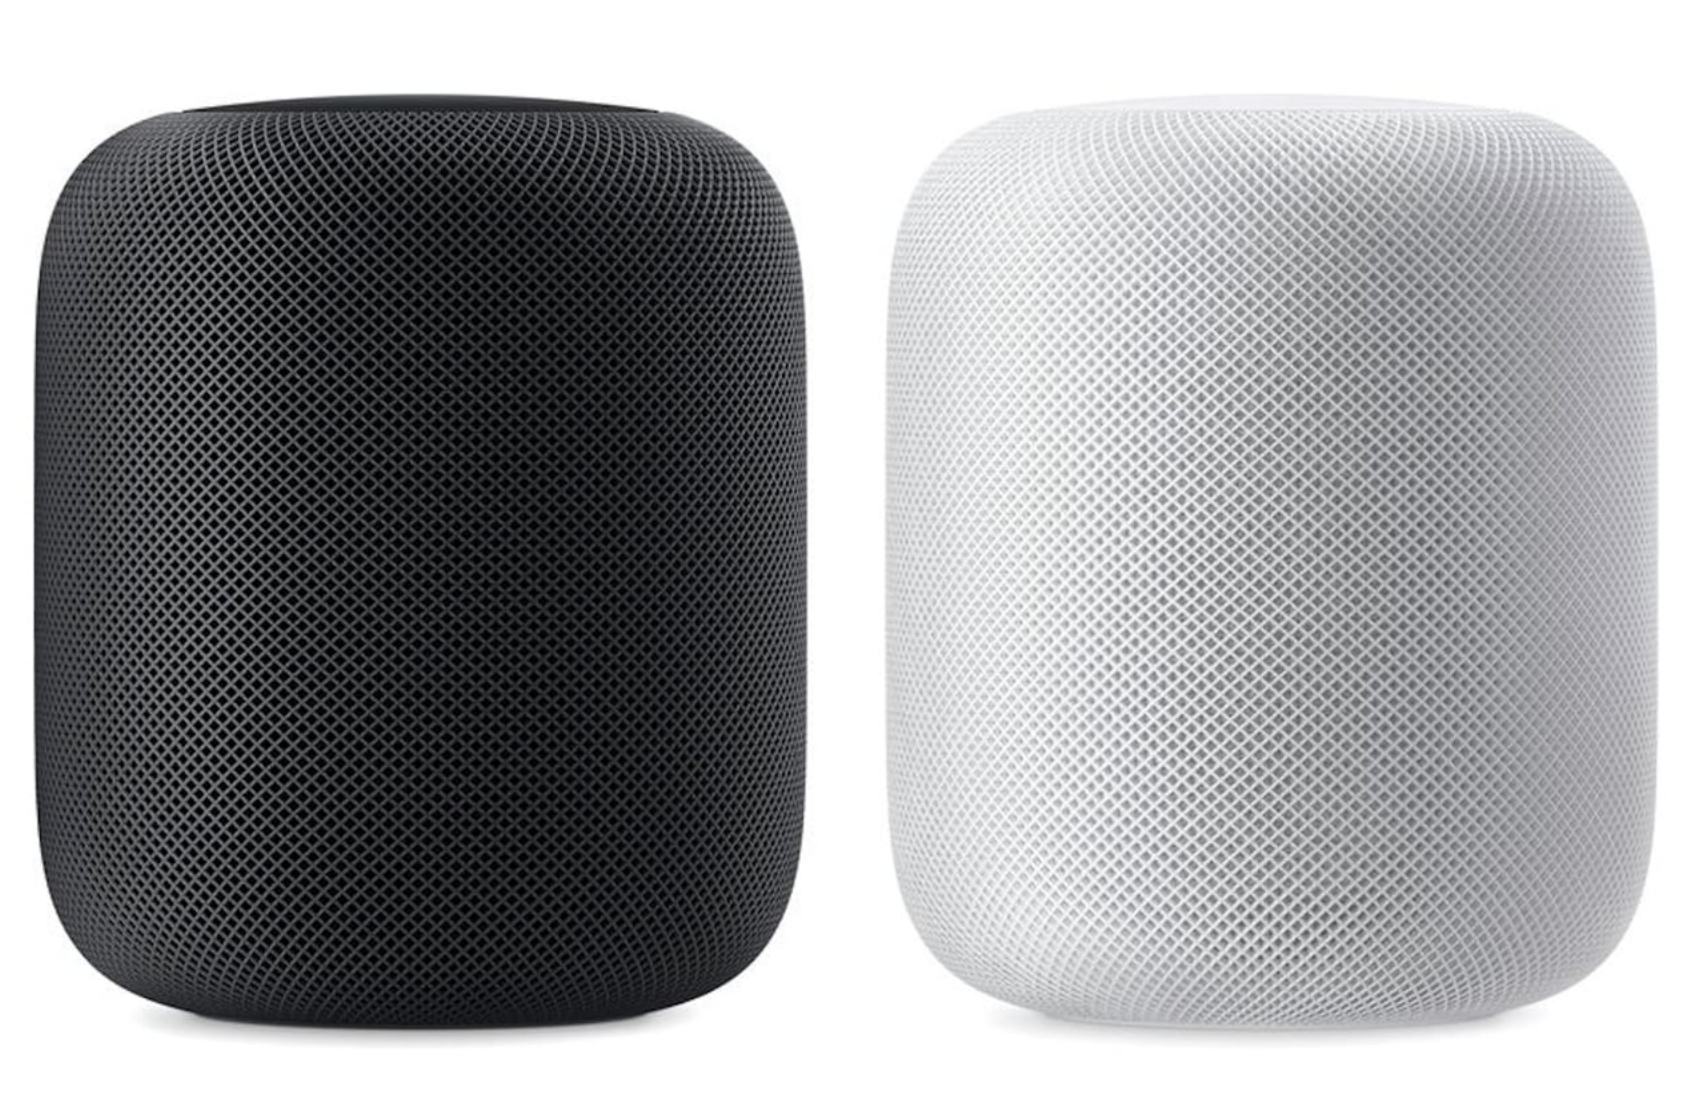 Le HomePod, l'assistant vocal d'Apple avec Siri, sort ce lundi